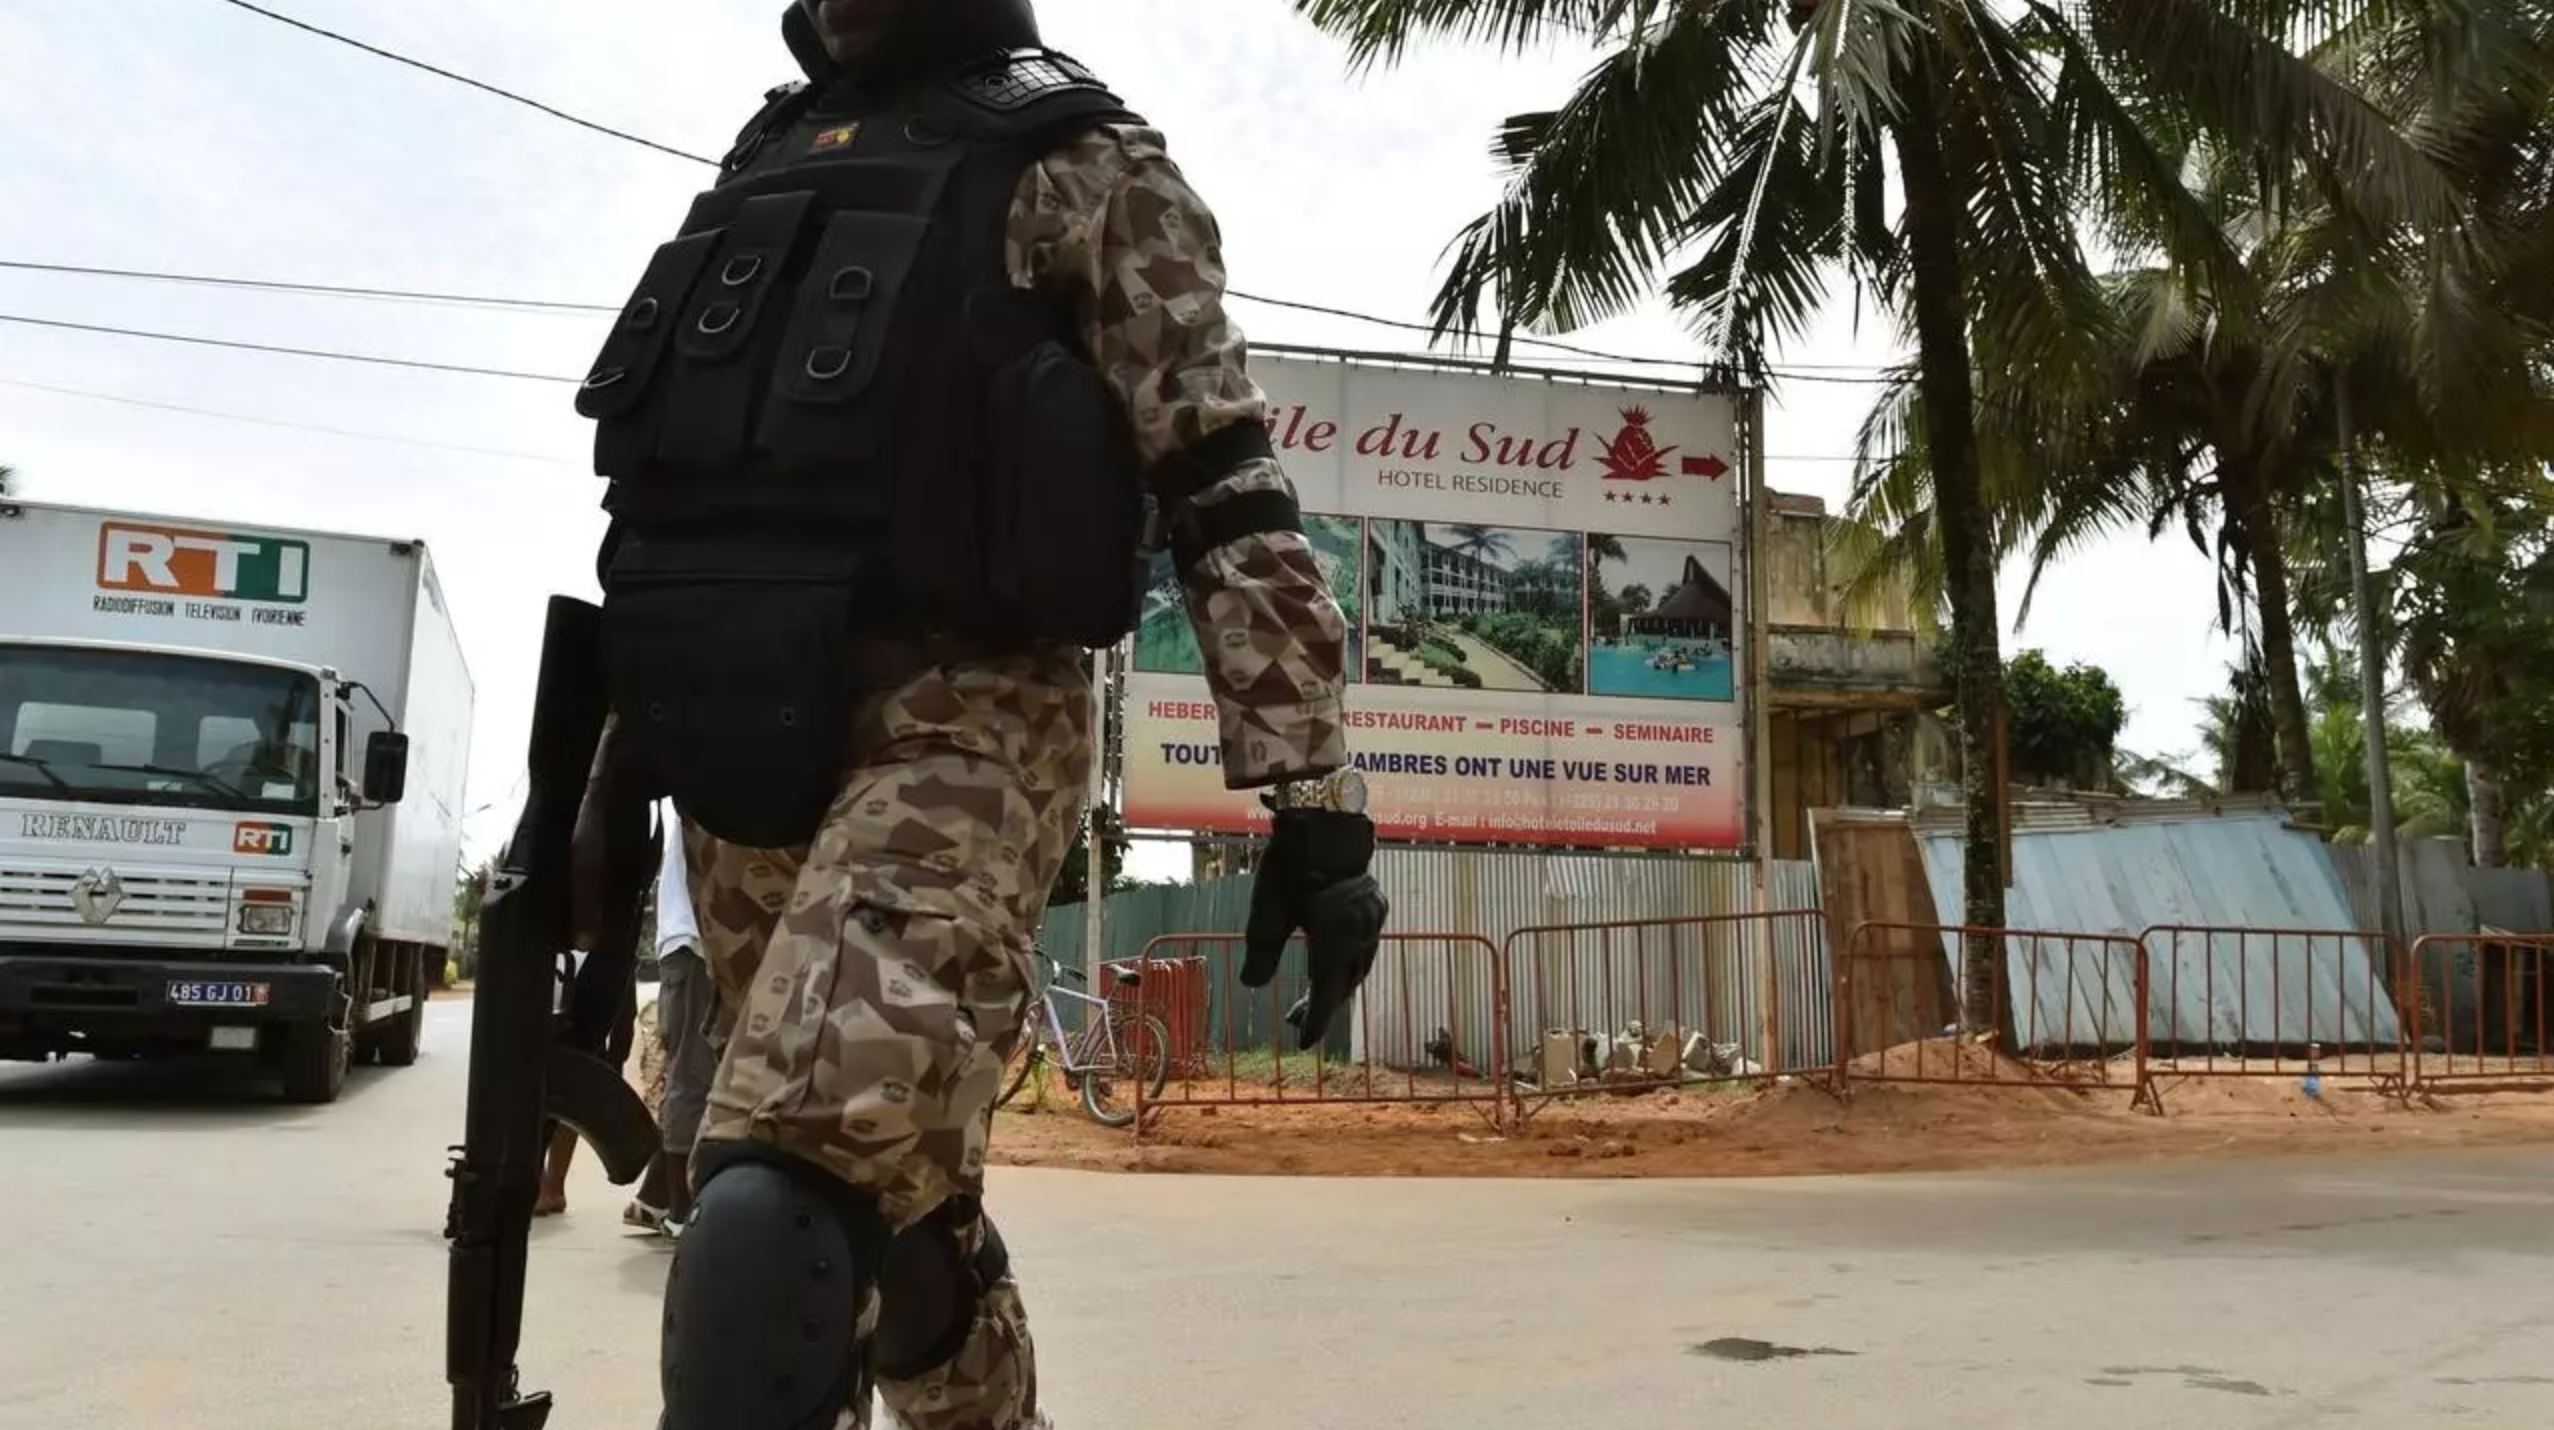 A soldier patrols near the hotel Etoile du Sud in Grand Bassam, Ivory Coast, on March 13, 2016 during a commemoration ceremony for the first anniversary of the 2016 Grand Bassam beach terrorist attack, resulting in the death of 19 people.